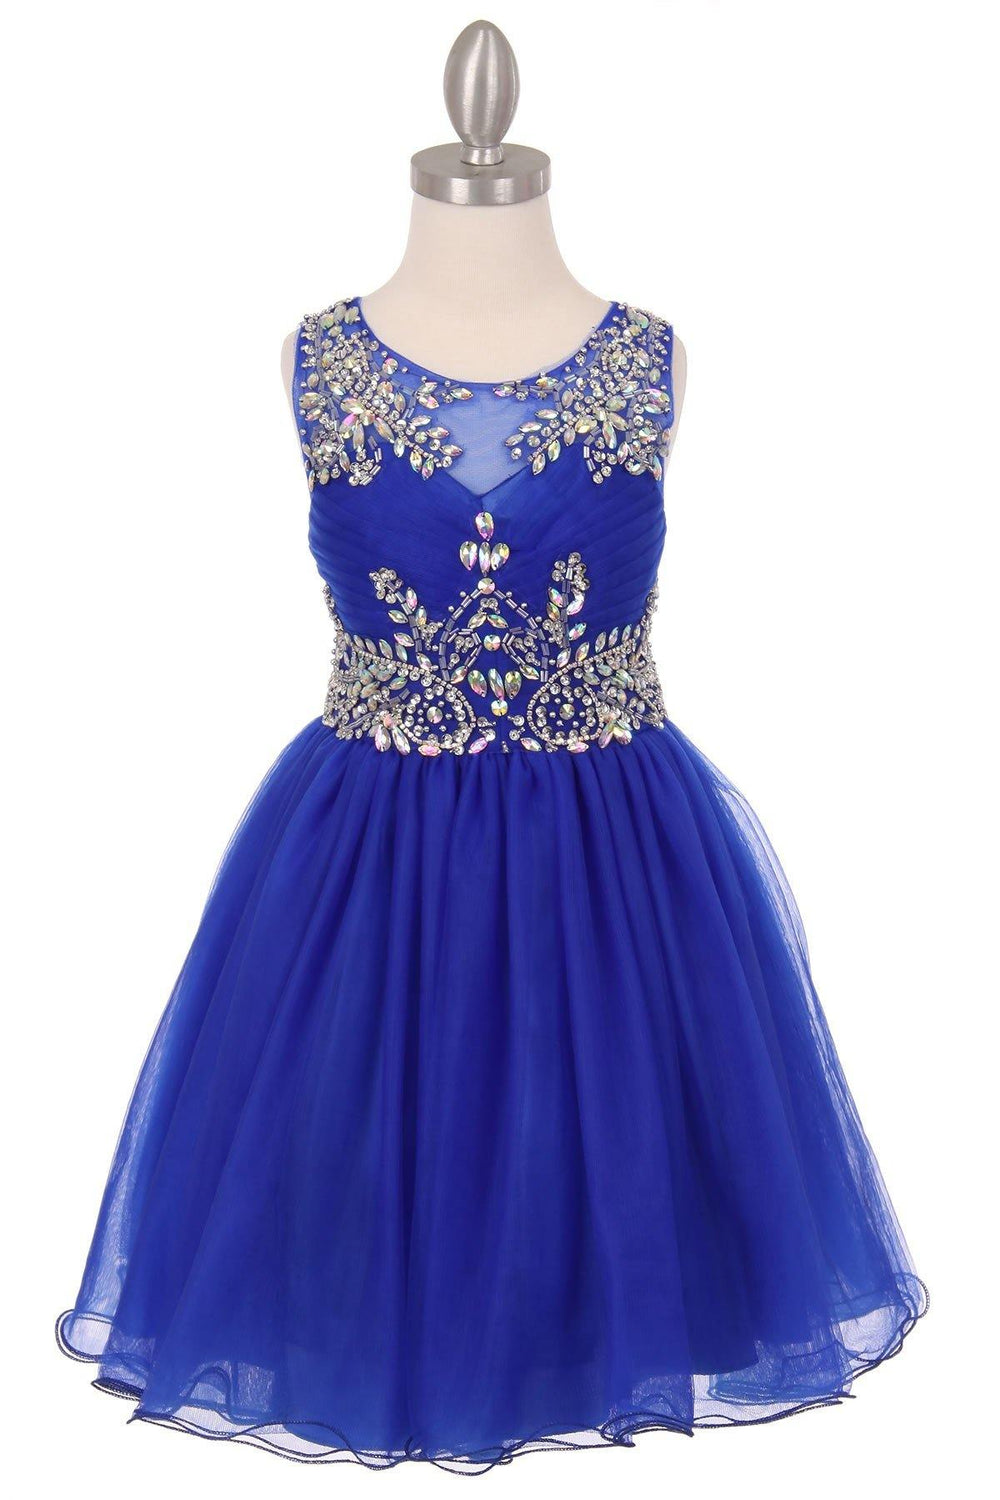 Sleeveless Flower Girl Dress with Rhinestone Bodice - The Dress Outlet Royal Blue